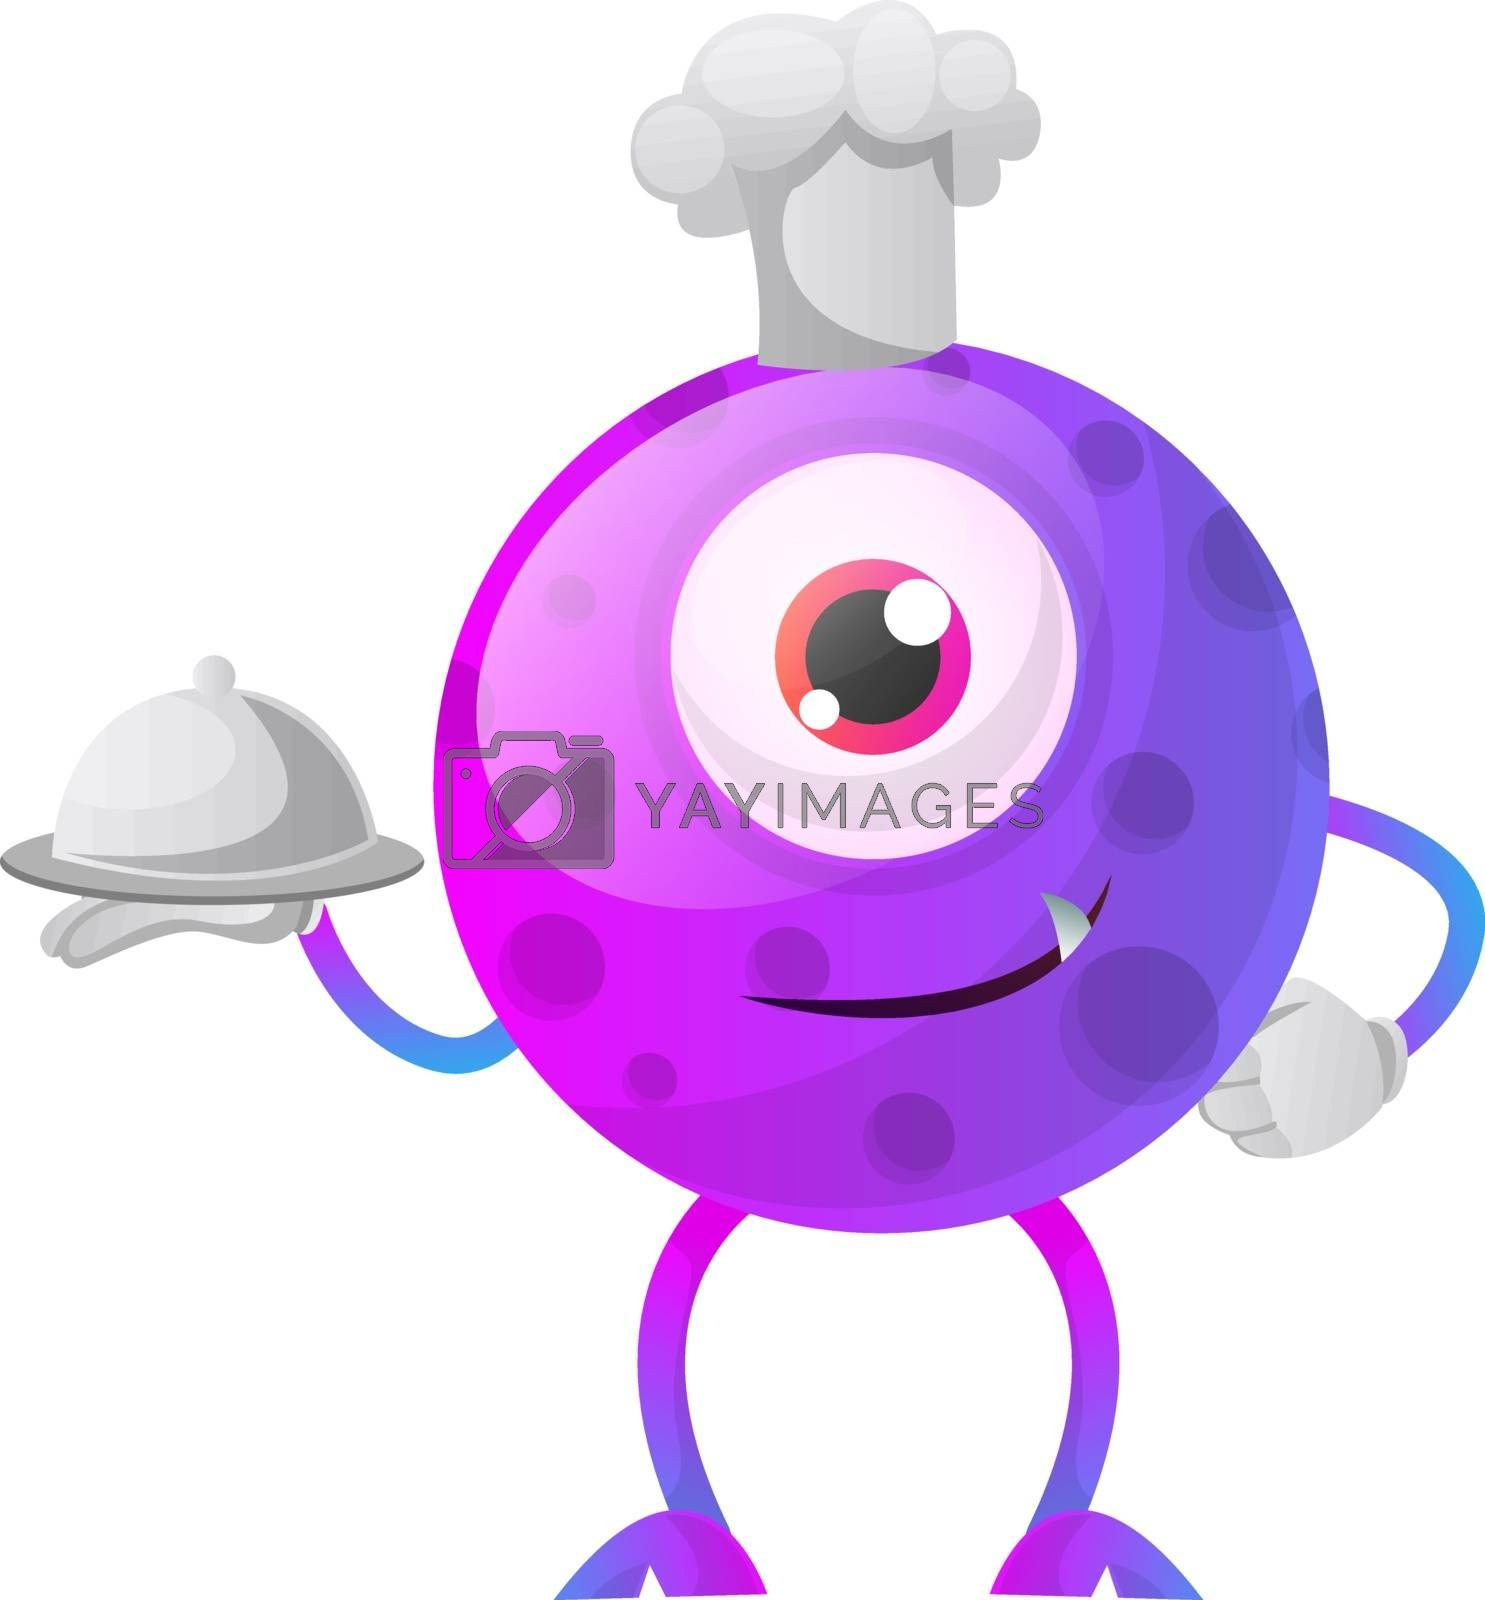 Royalty free image of One eyed purple monster chef illustration vector on white backgr by Morphart